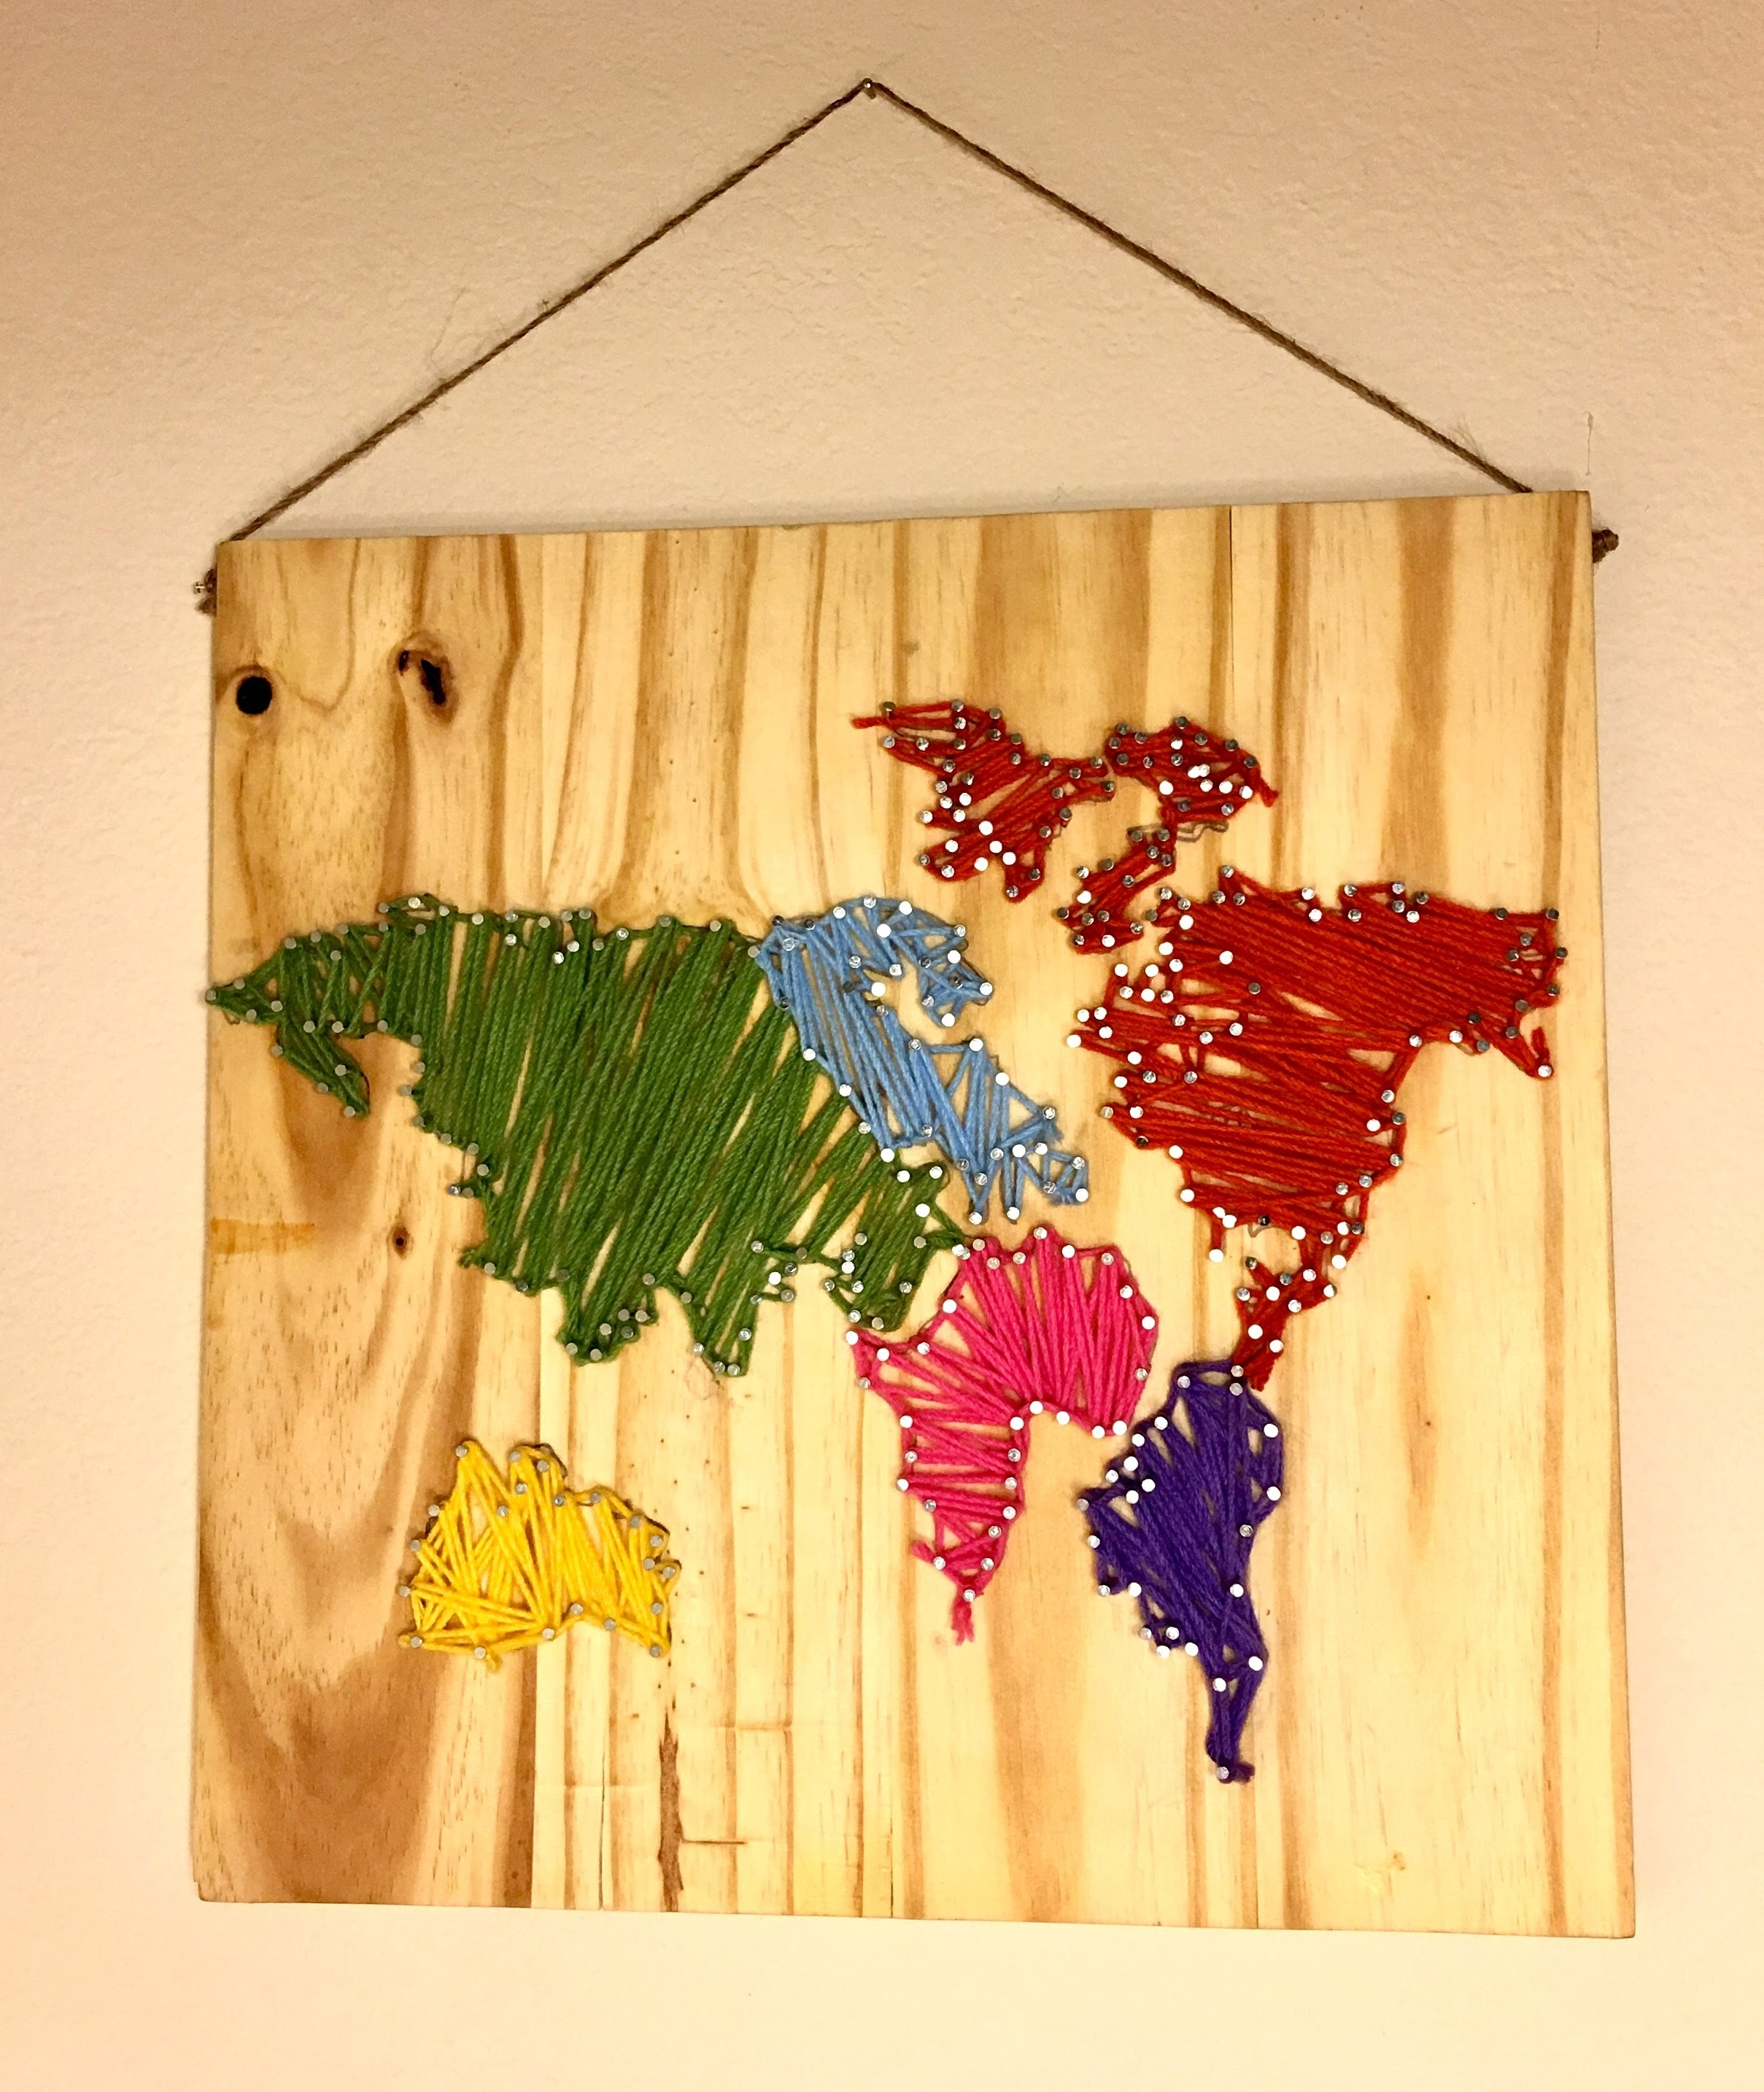 [%Diy World Map Wall Nail String Art [Timelapse] – Youtube Throughout Latest String Map Wall Art|String Map Wall Art Within Most Recent Diy World Map Wall Nail String Art [Timelapse] – Youtube|Current String Map Wall Art Inside Diy World Map Wall Nail String Art [Timelapse] – Youtube|Famous Diy World Map Wall Nail String Art [Timelapse] – Youtube Intended For String Map Wall Art%] (View 4 of 15)